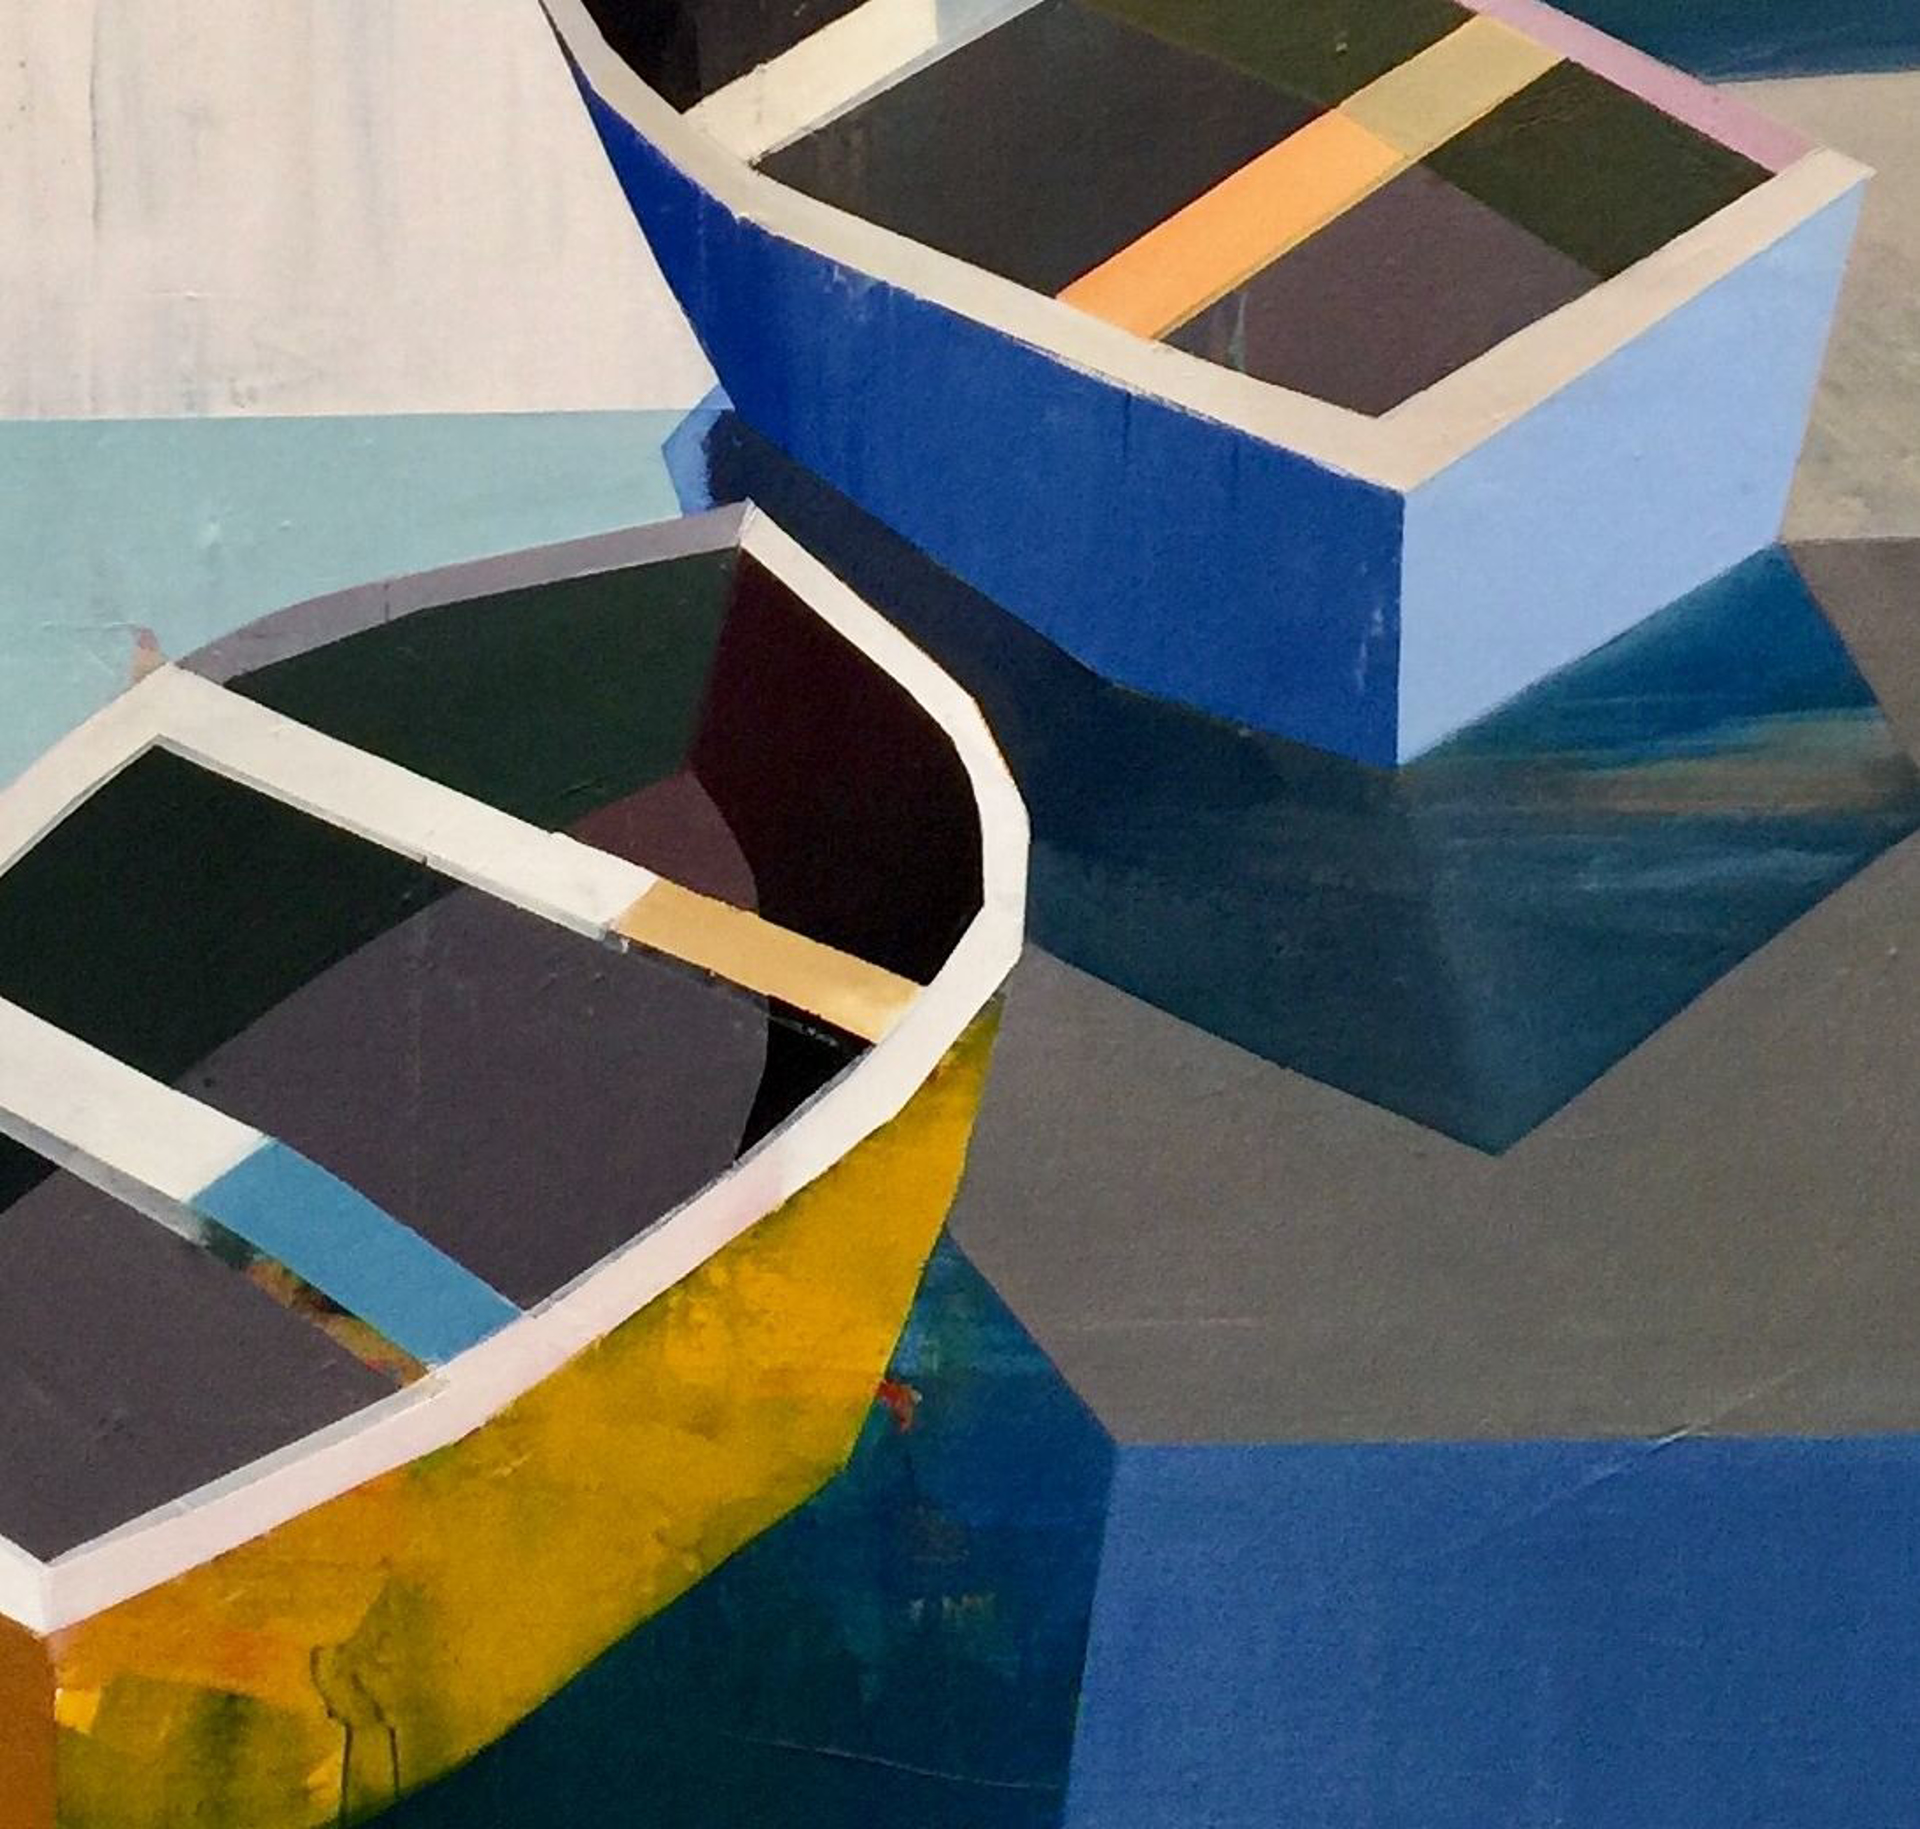 Boats in the Shallow Water #24 by Siddharth Parasnis